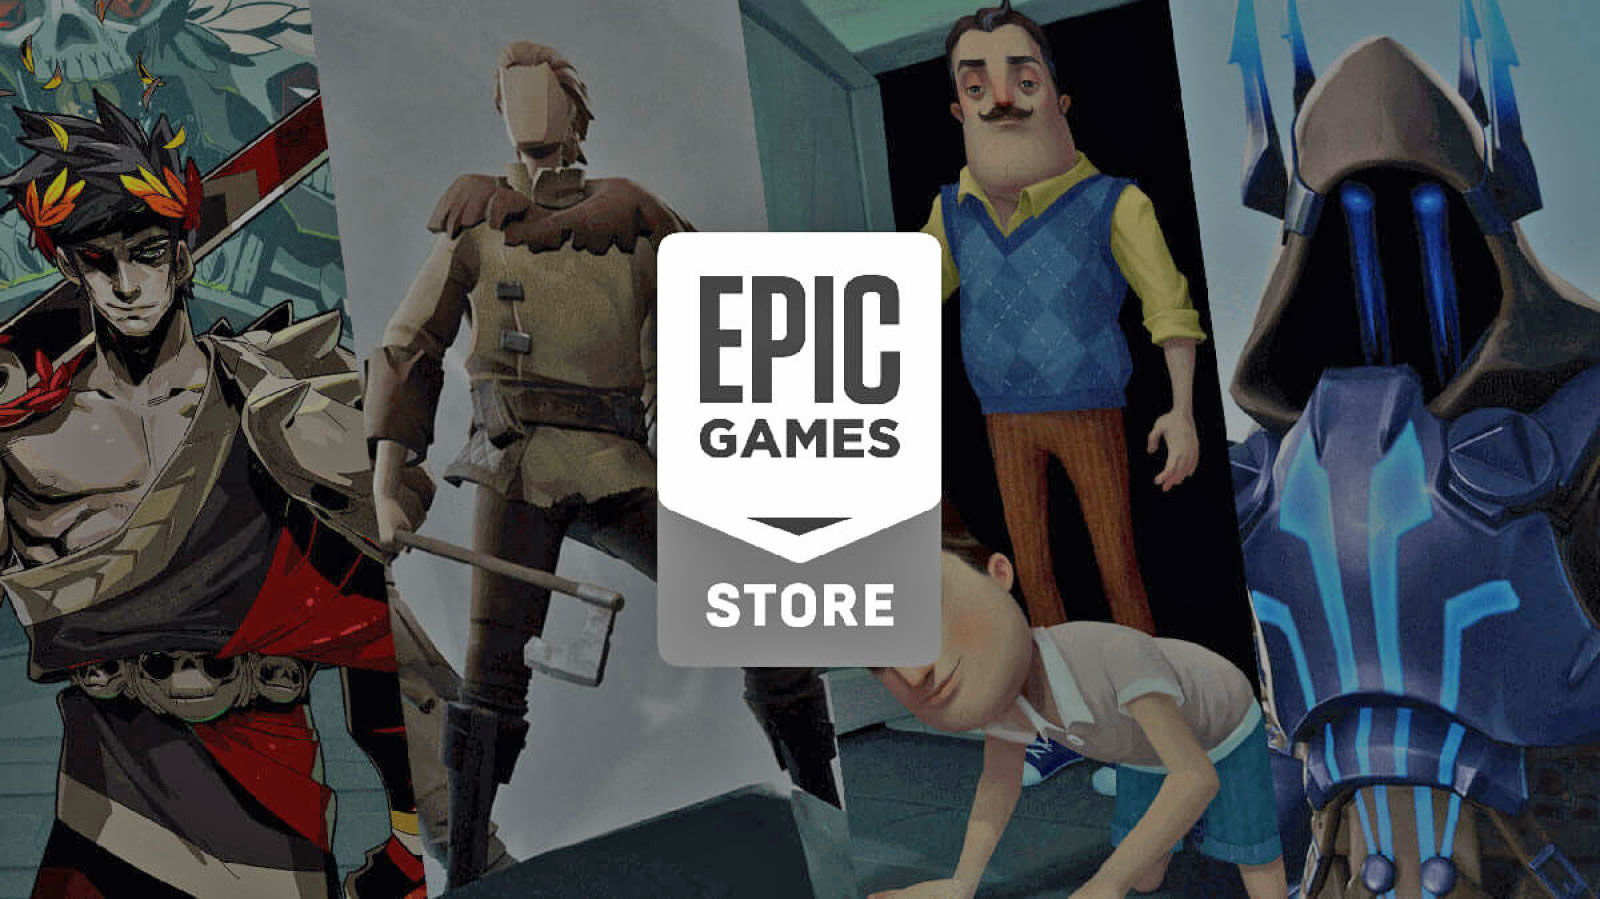 Tim Sweeney, the Epic Games Store founder has recently tried to debunk the malicious rumors.